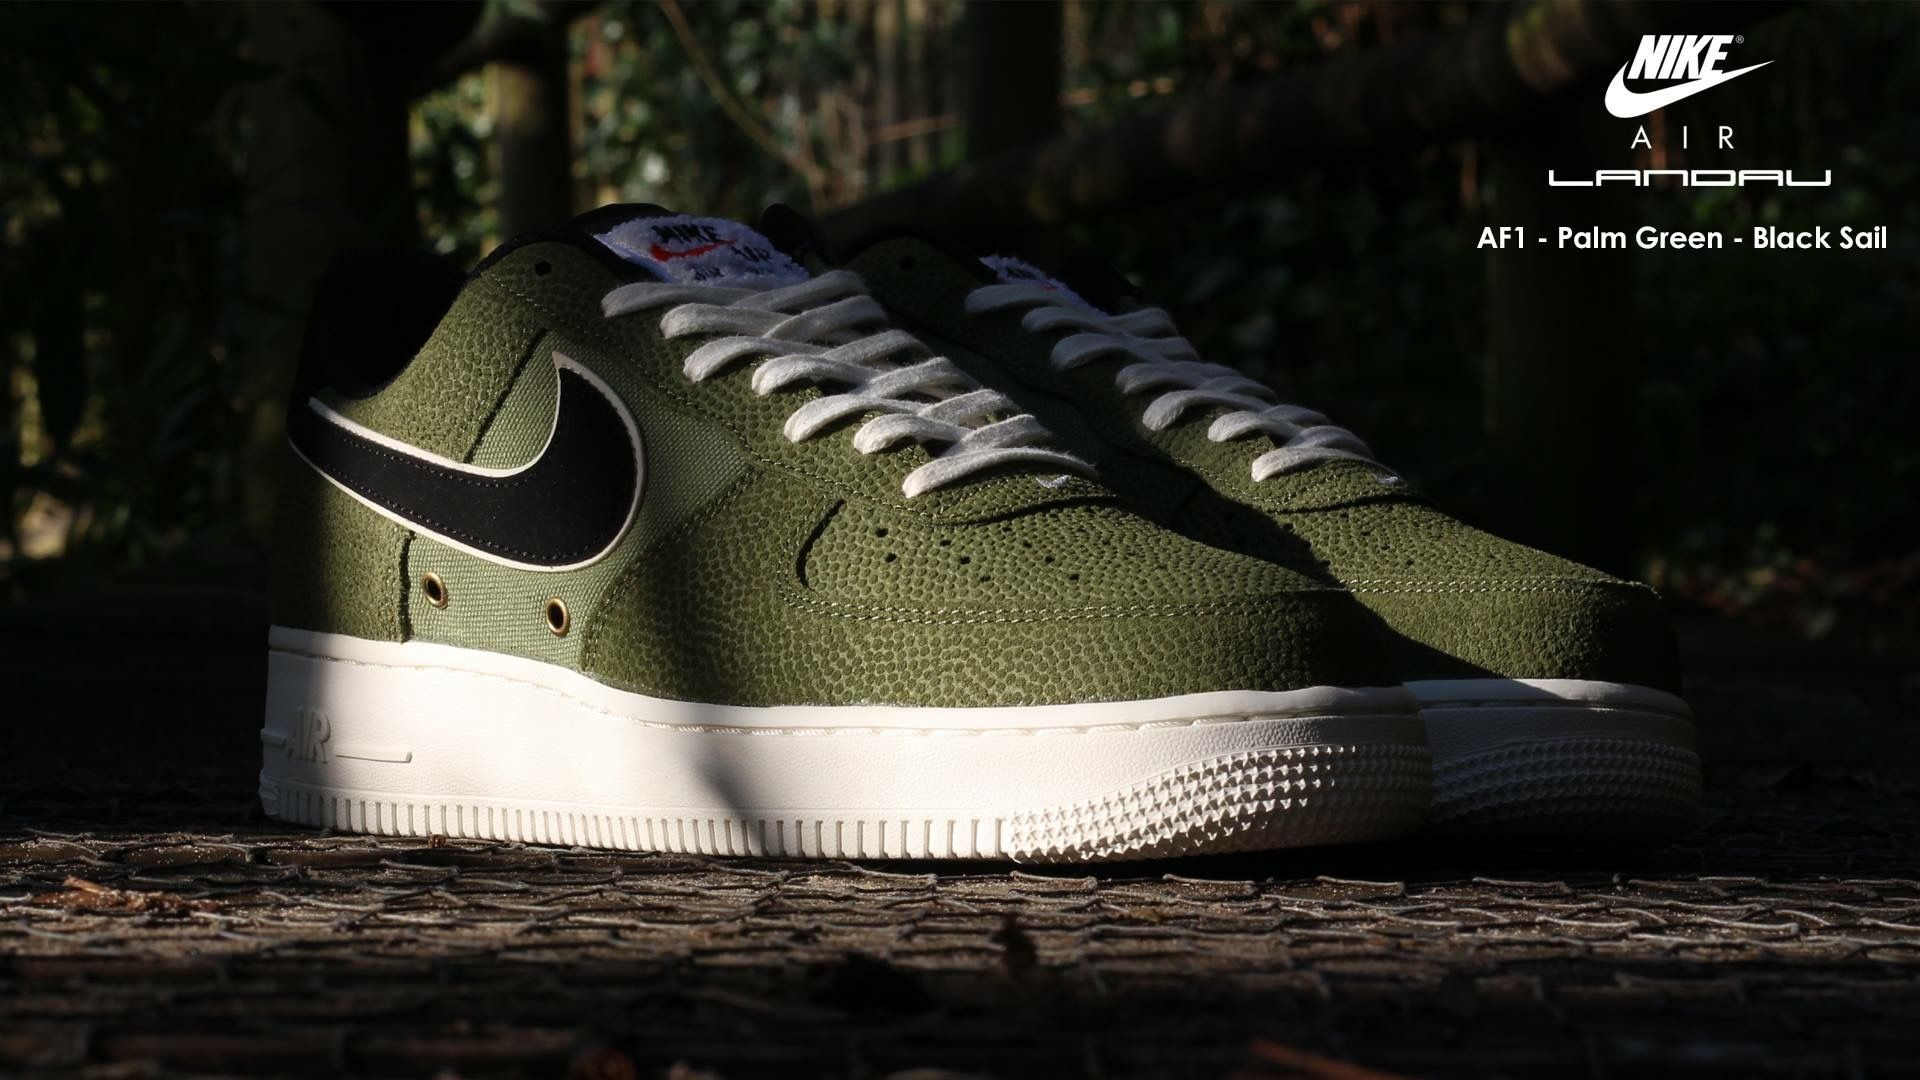 Nike Shoes Men's Air Force 1 07 LV8 Palm Green Black Sail Landau